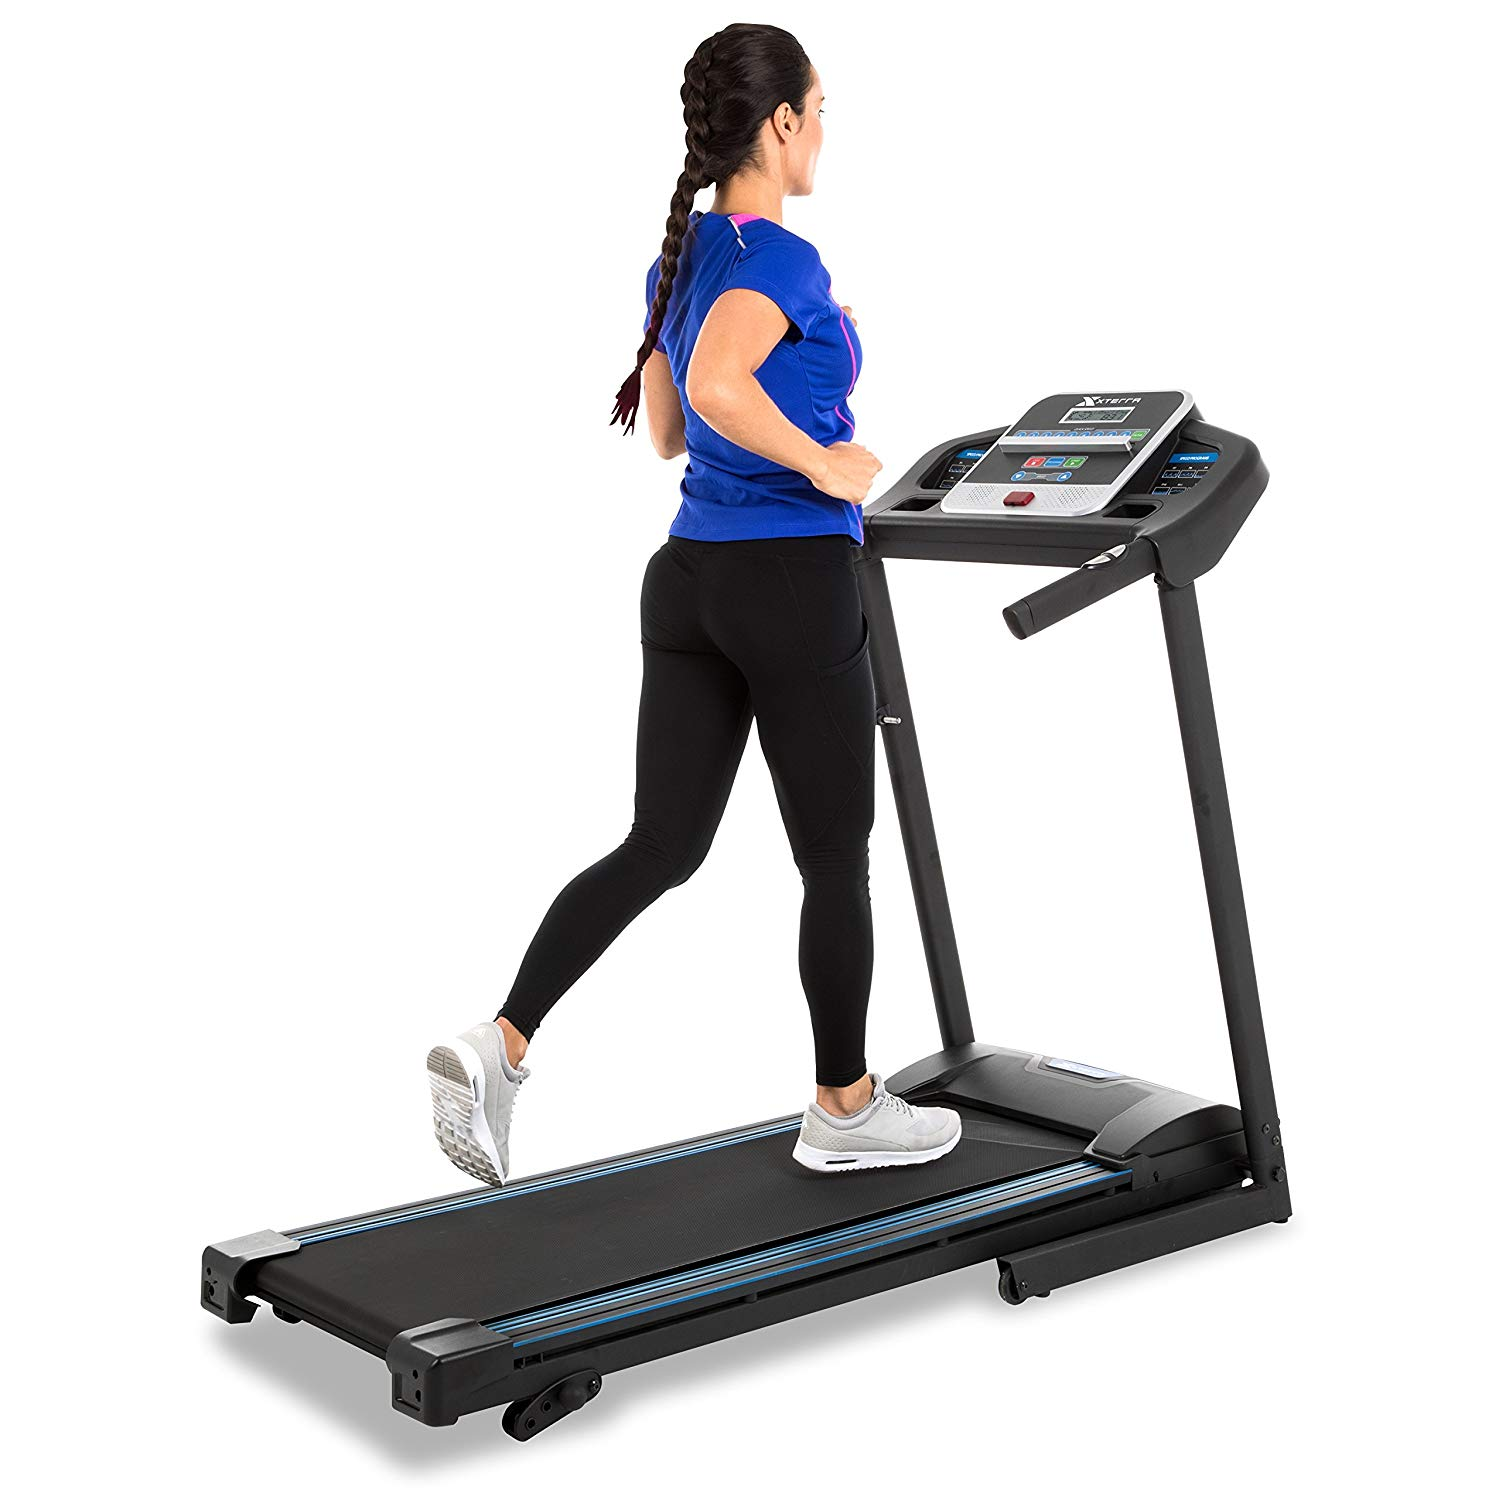 XTERRA Fitness Quiet Treadmill